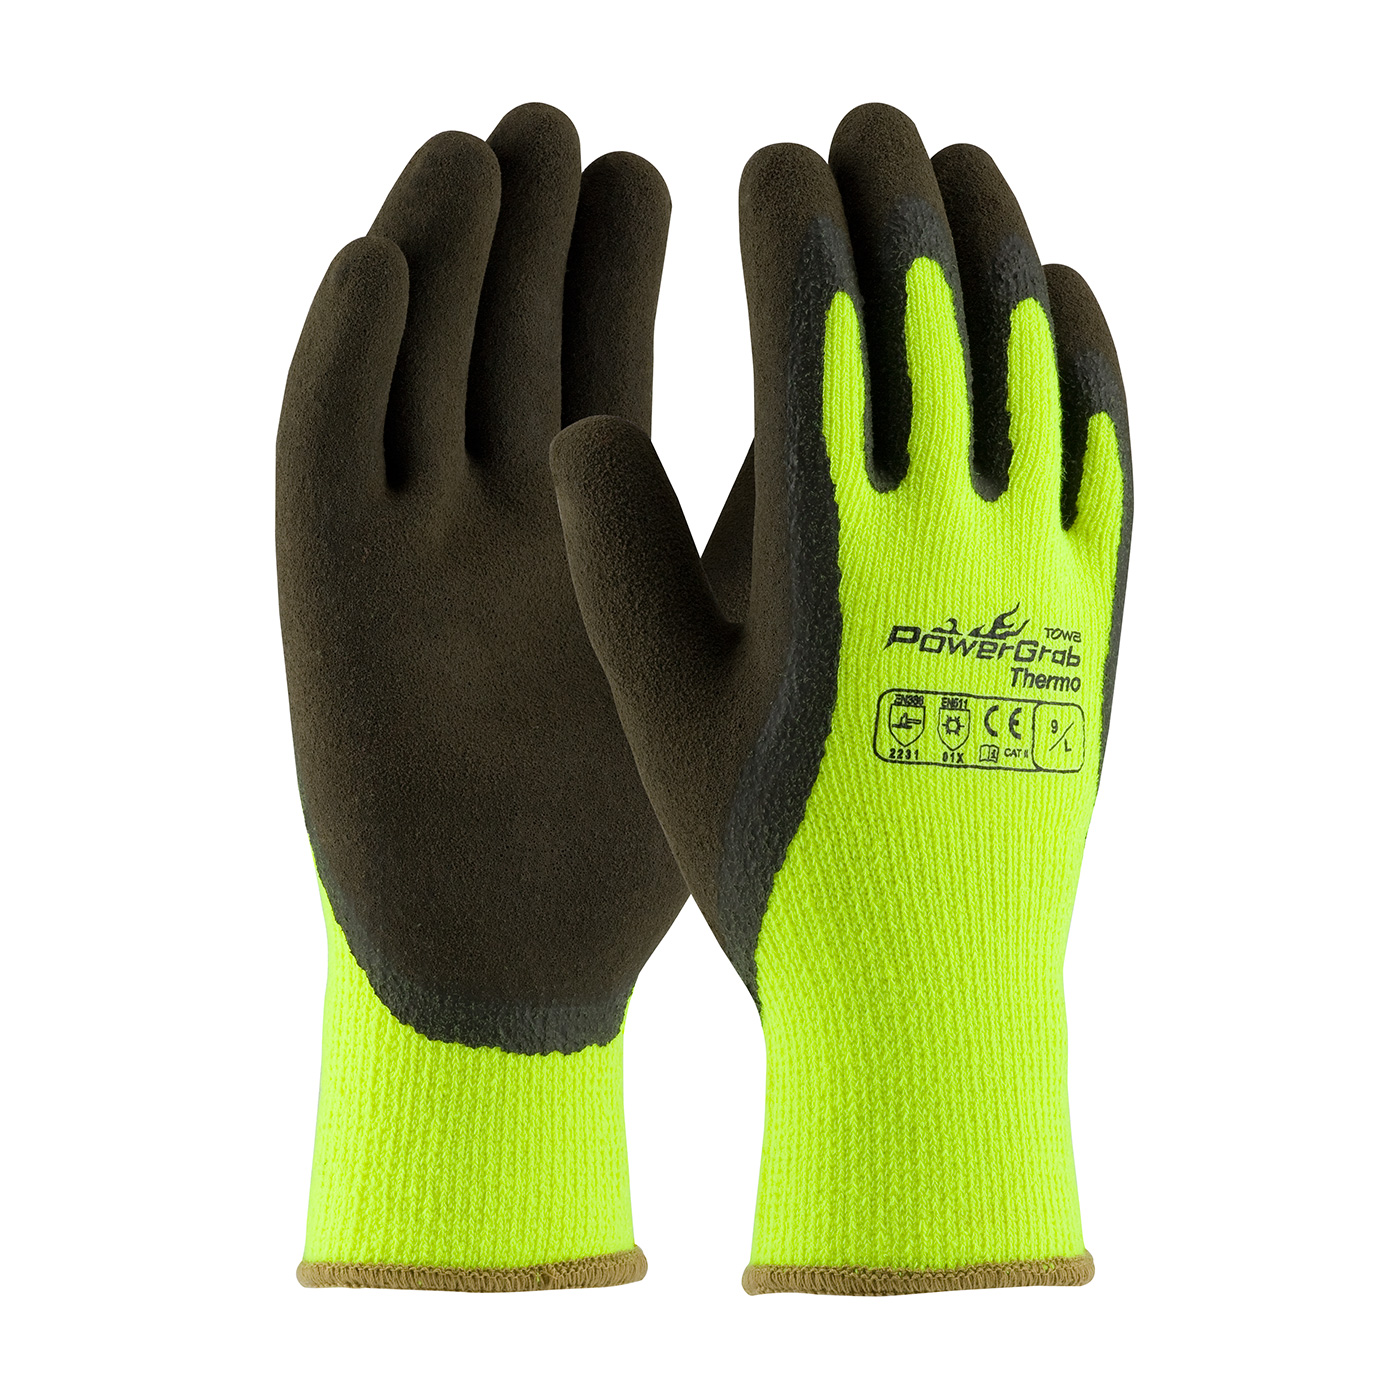 #41-1405 PIP® Hi-Vis Lime PowerGrab™ Thermo Coated Winter Work Gloves with Latex Microfinish™ Grip,